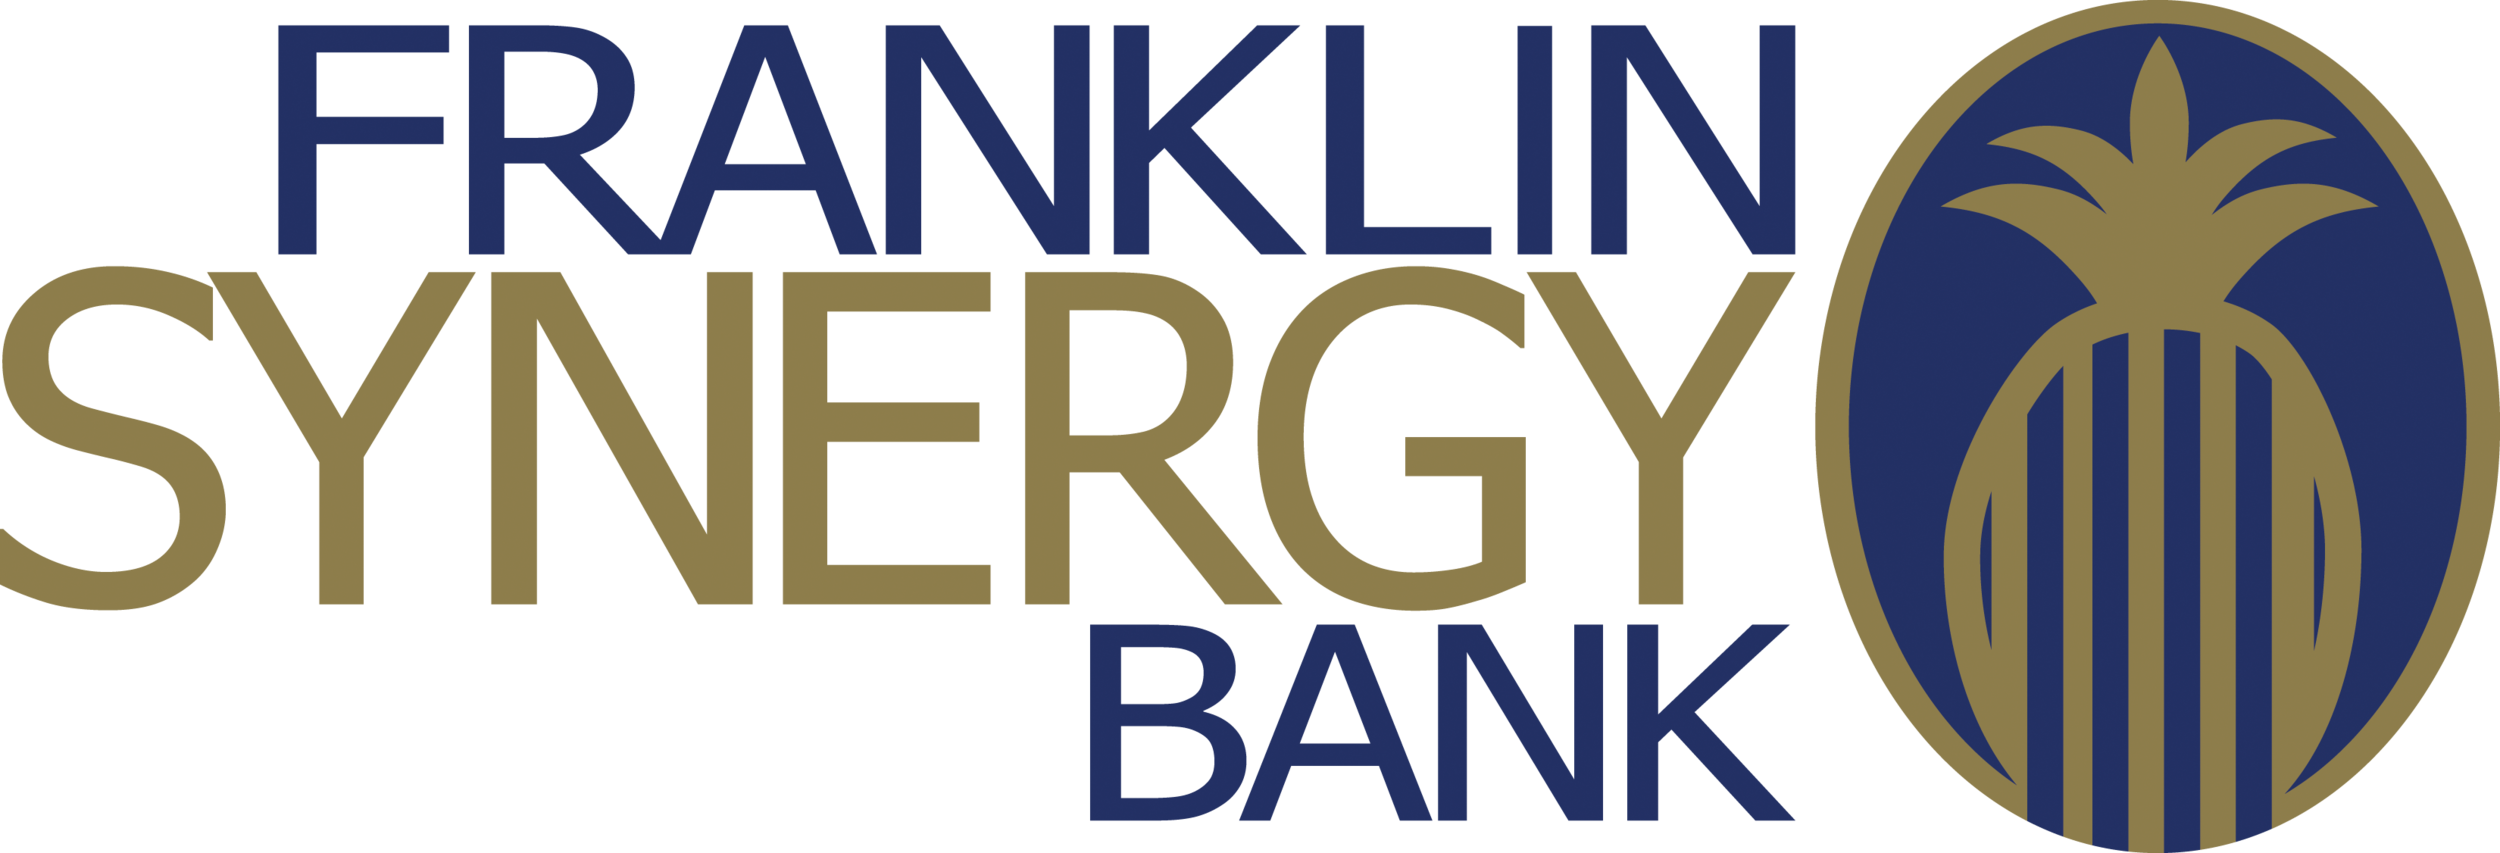 Franklin Synergy Bank ($1,000 – Water Station).png